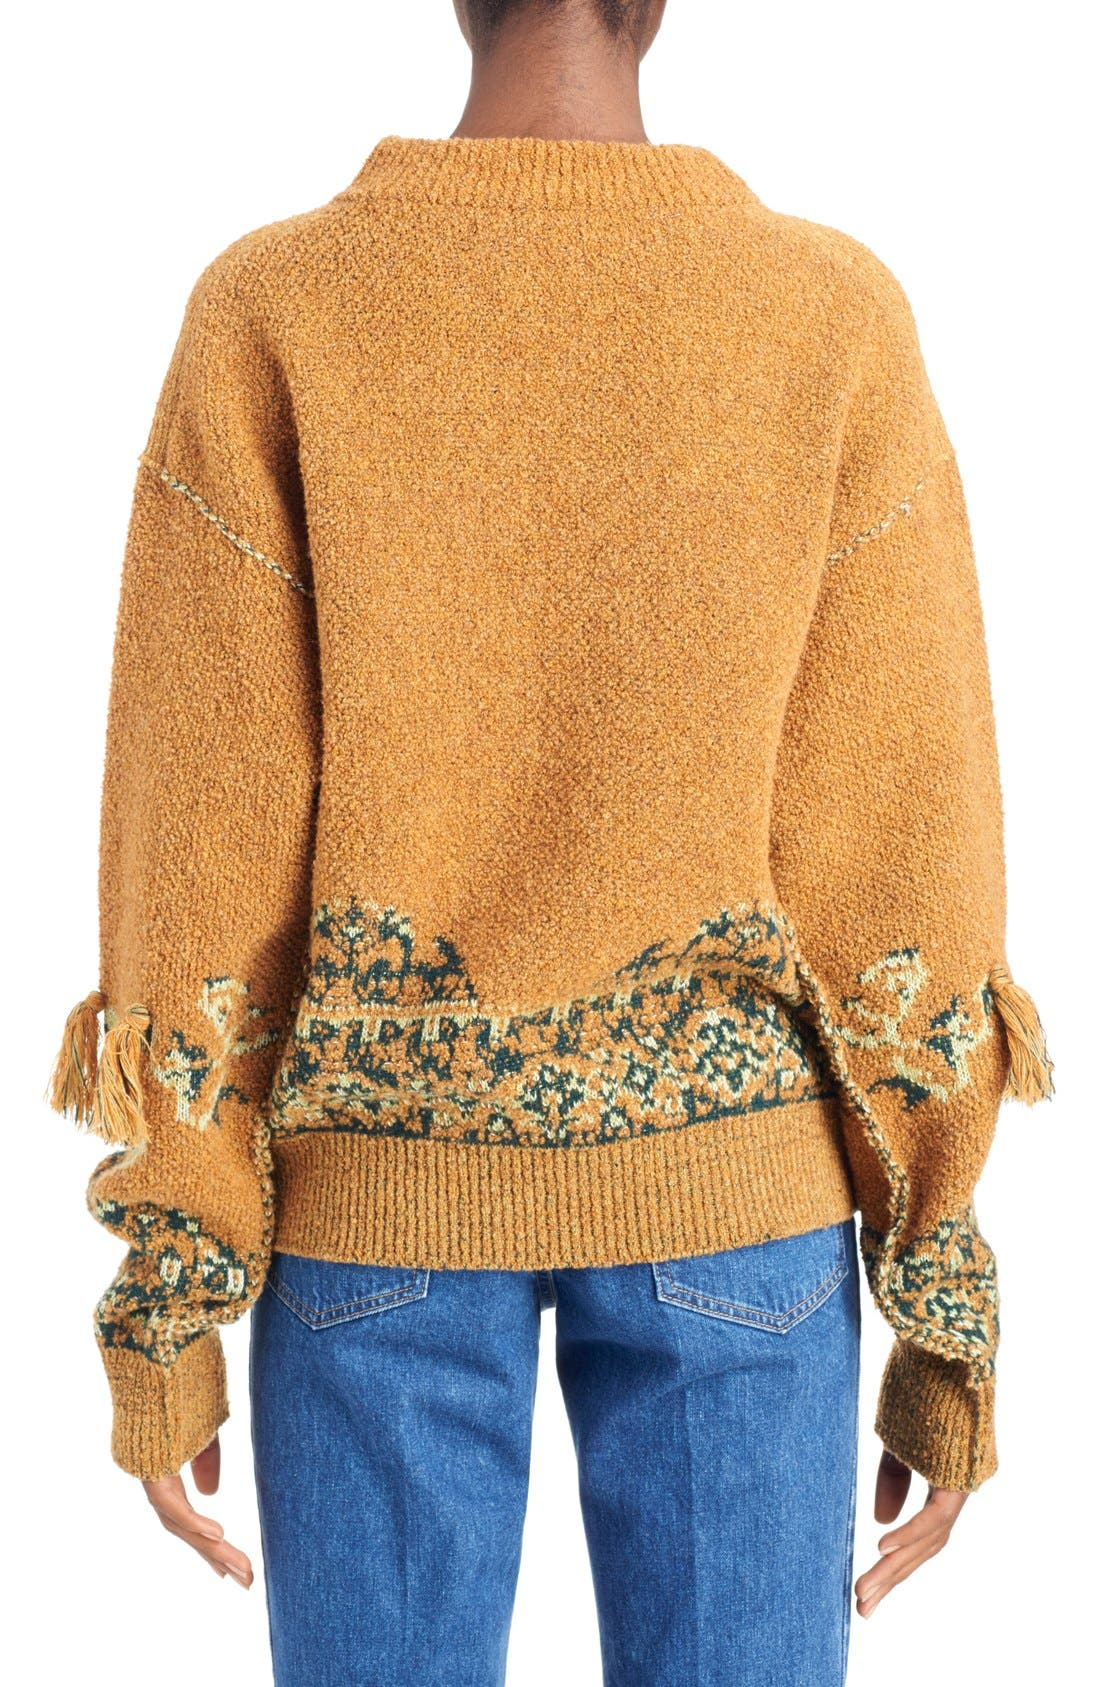 Tassel Wool Blend Sweater,                             Alternate thumbnail 2, color,                             700